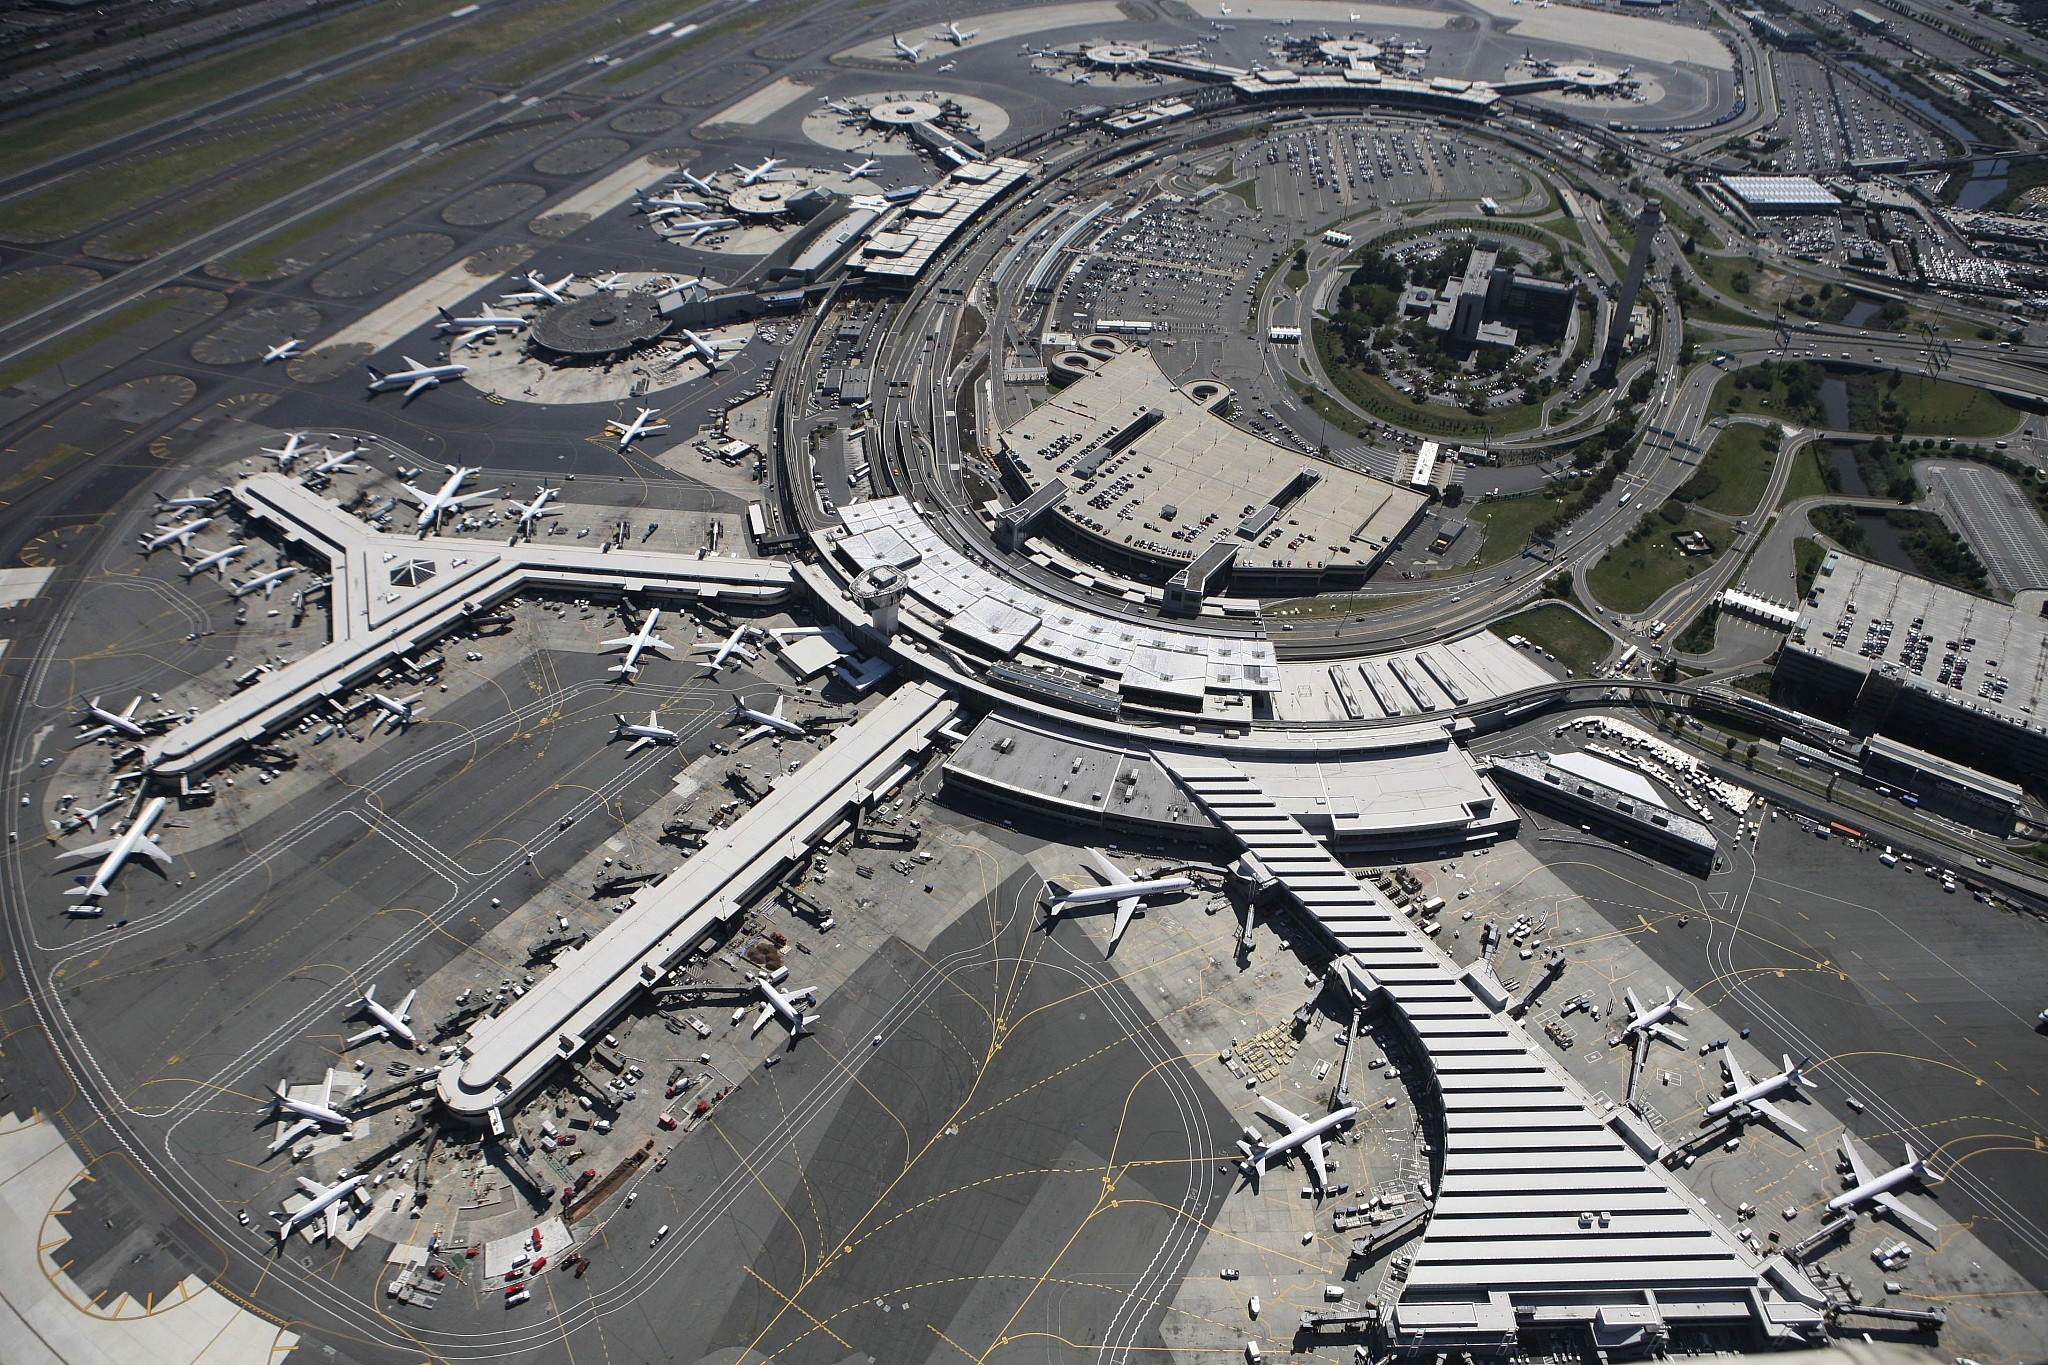 FAA: Flights at Newark Airport suspended after drones seen